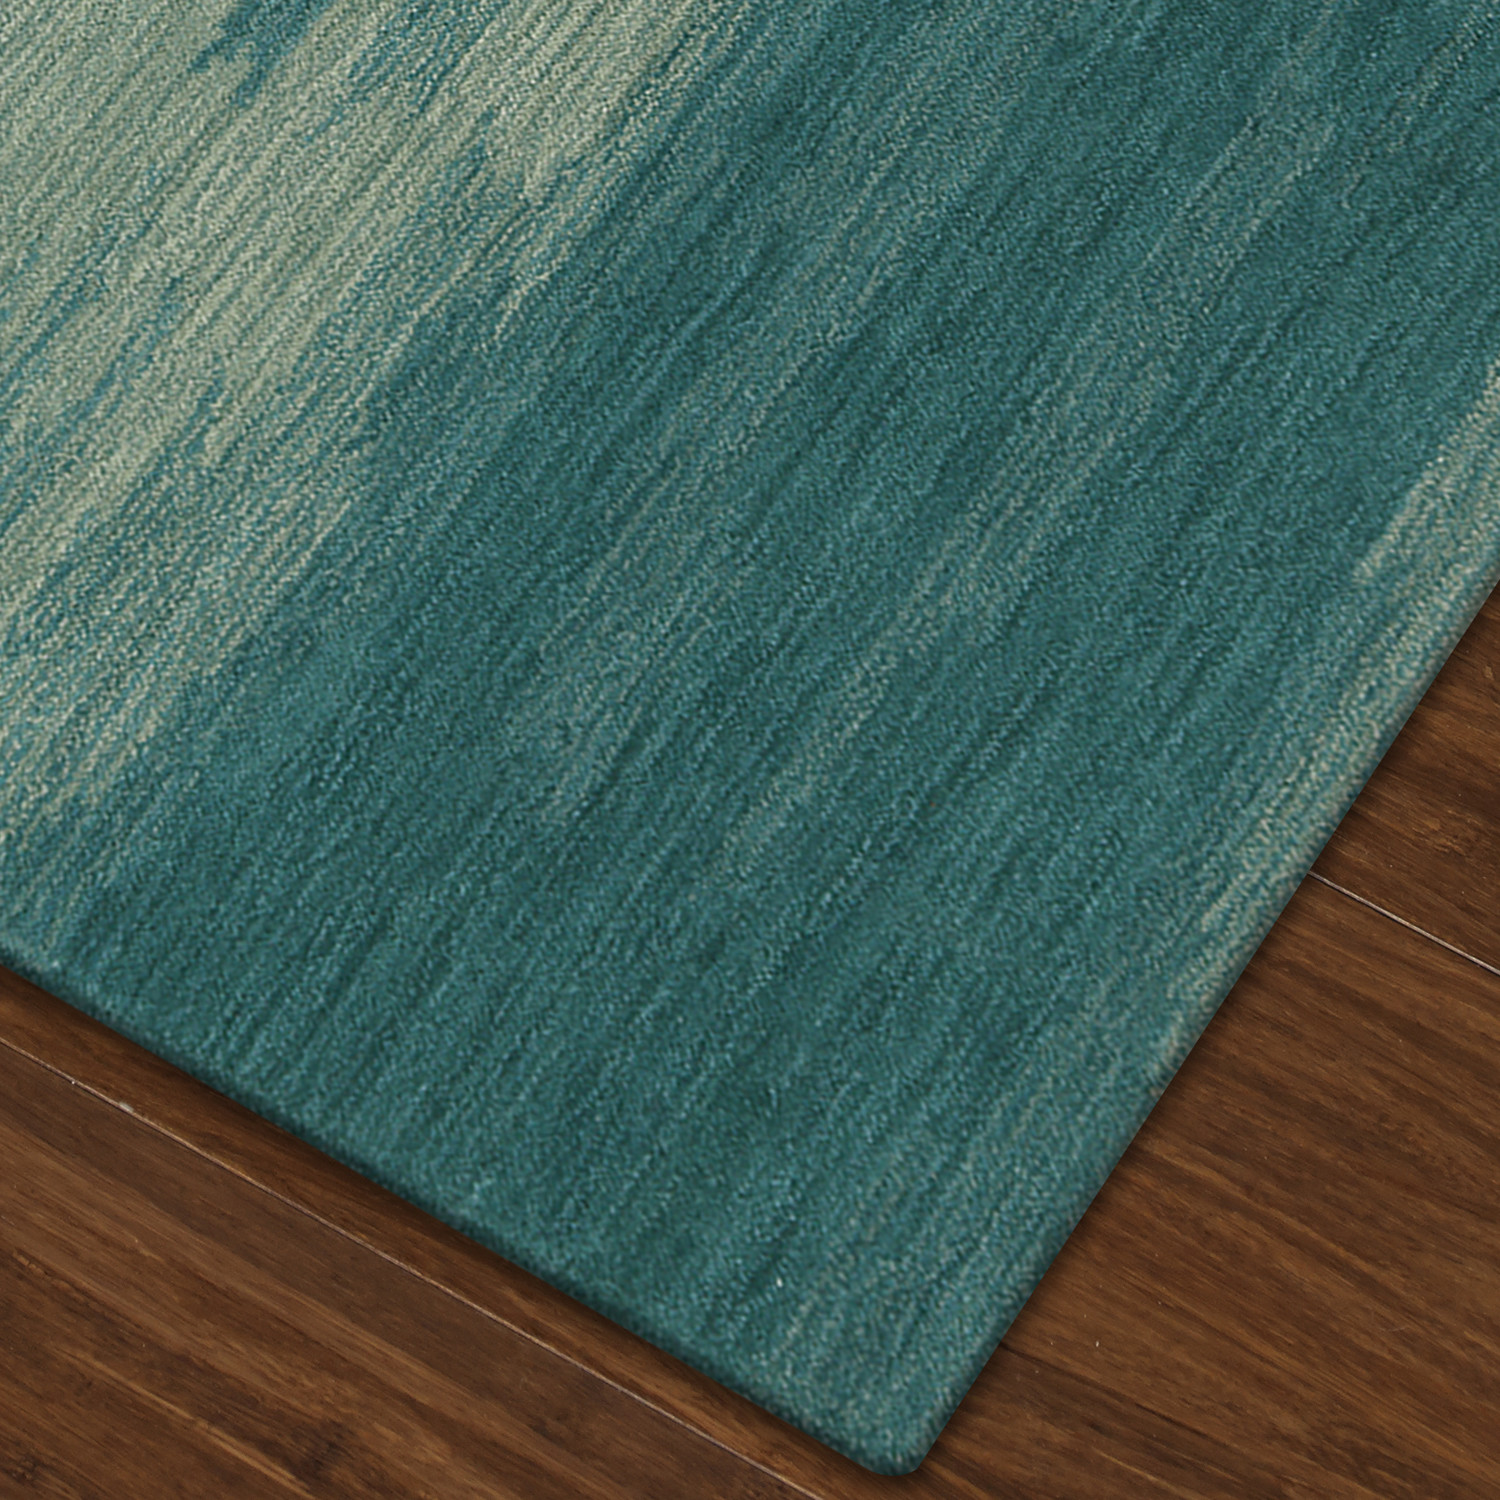 Elyria Abstract Stripes Shades Of Turquoise Area Rug